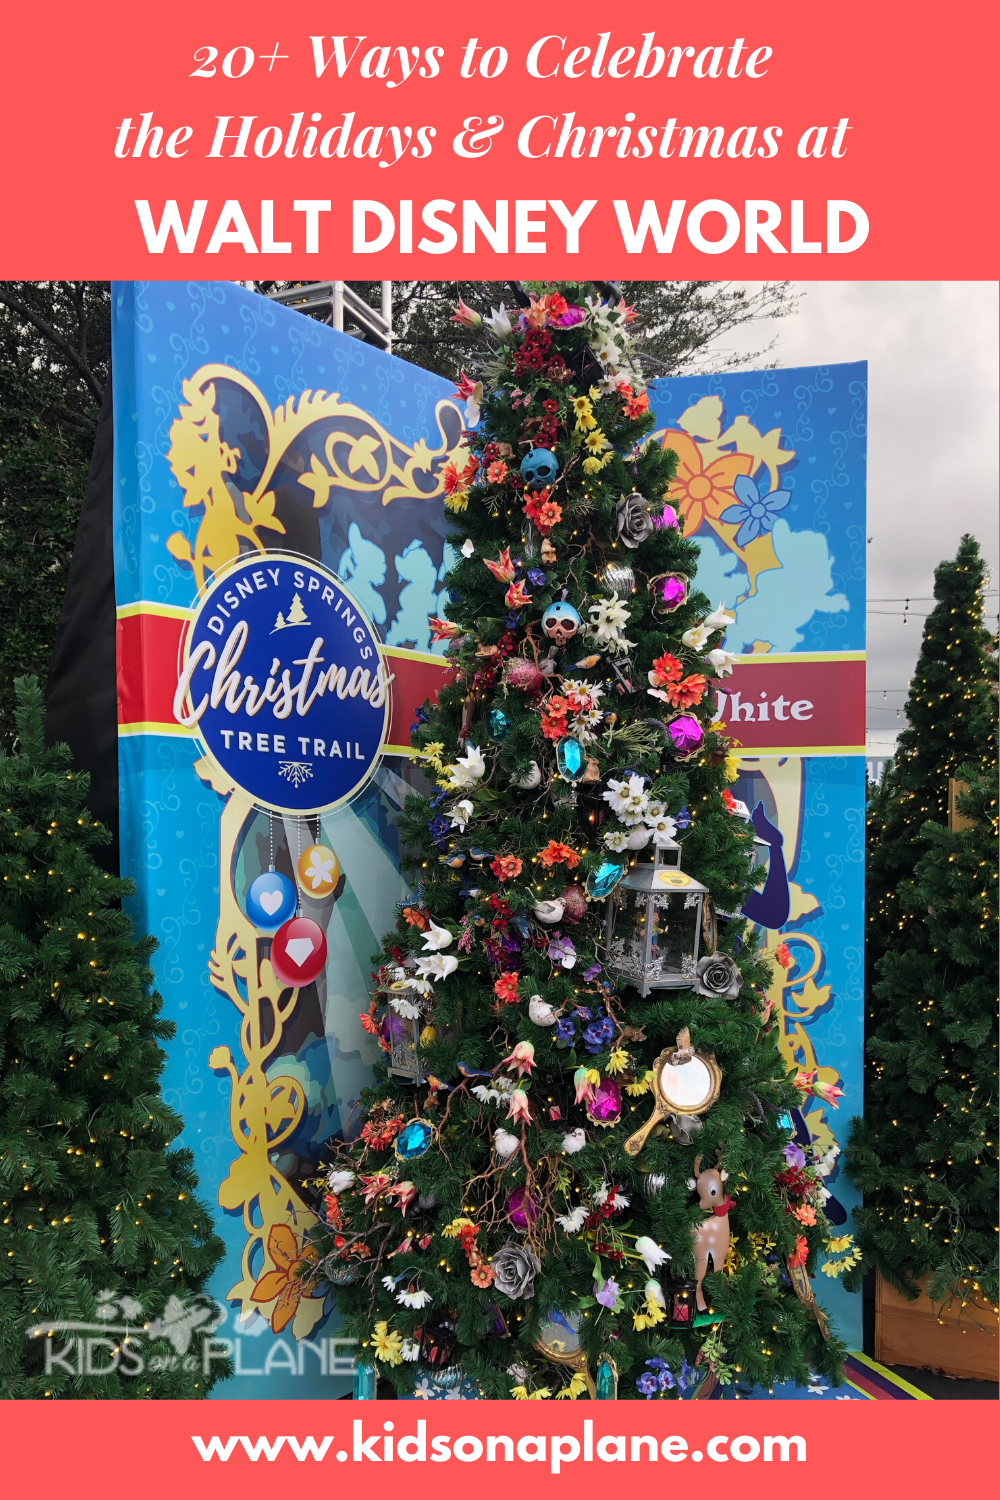 Ways to Celebrate the Holidays and Christmas at Walt Disney World Florida - Resorts Parks and Disney Springs